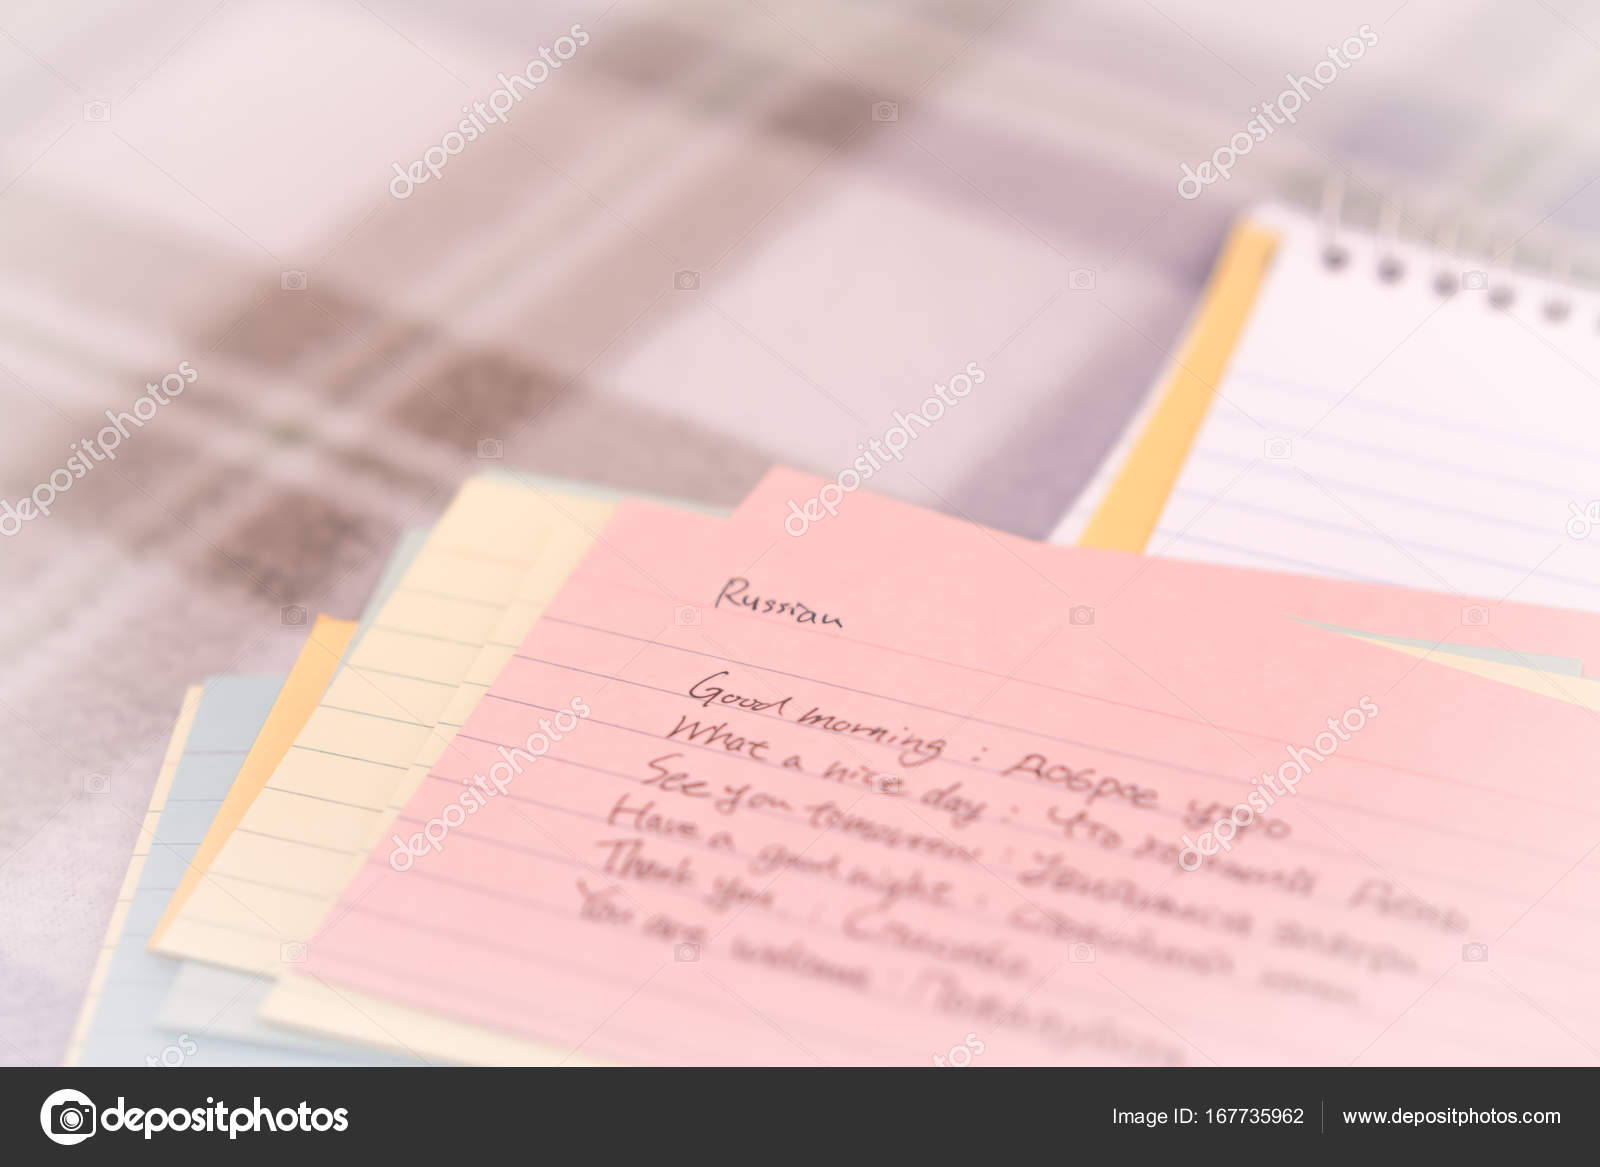 Russian learning new language writing greetings on the notebook russian learning new language writing greetings on the notebook stock photo kristyandbryce Gallery